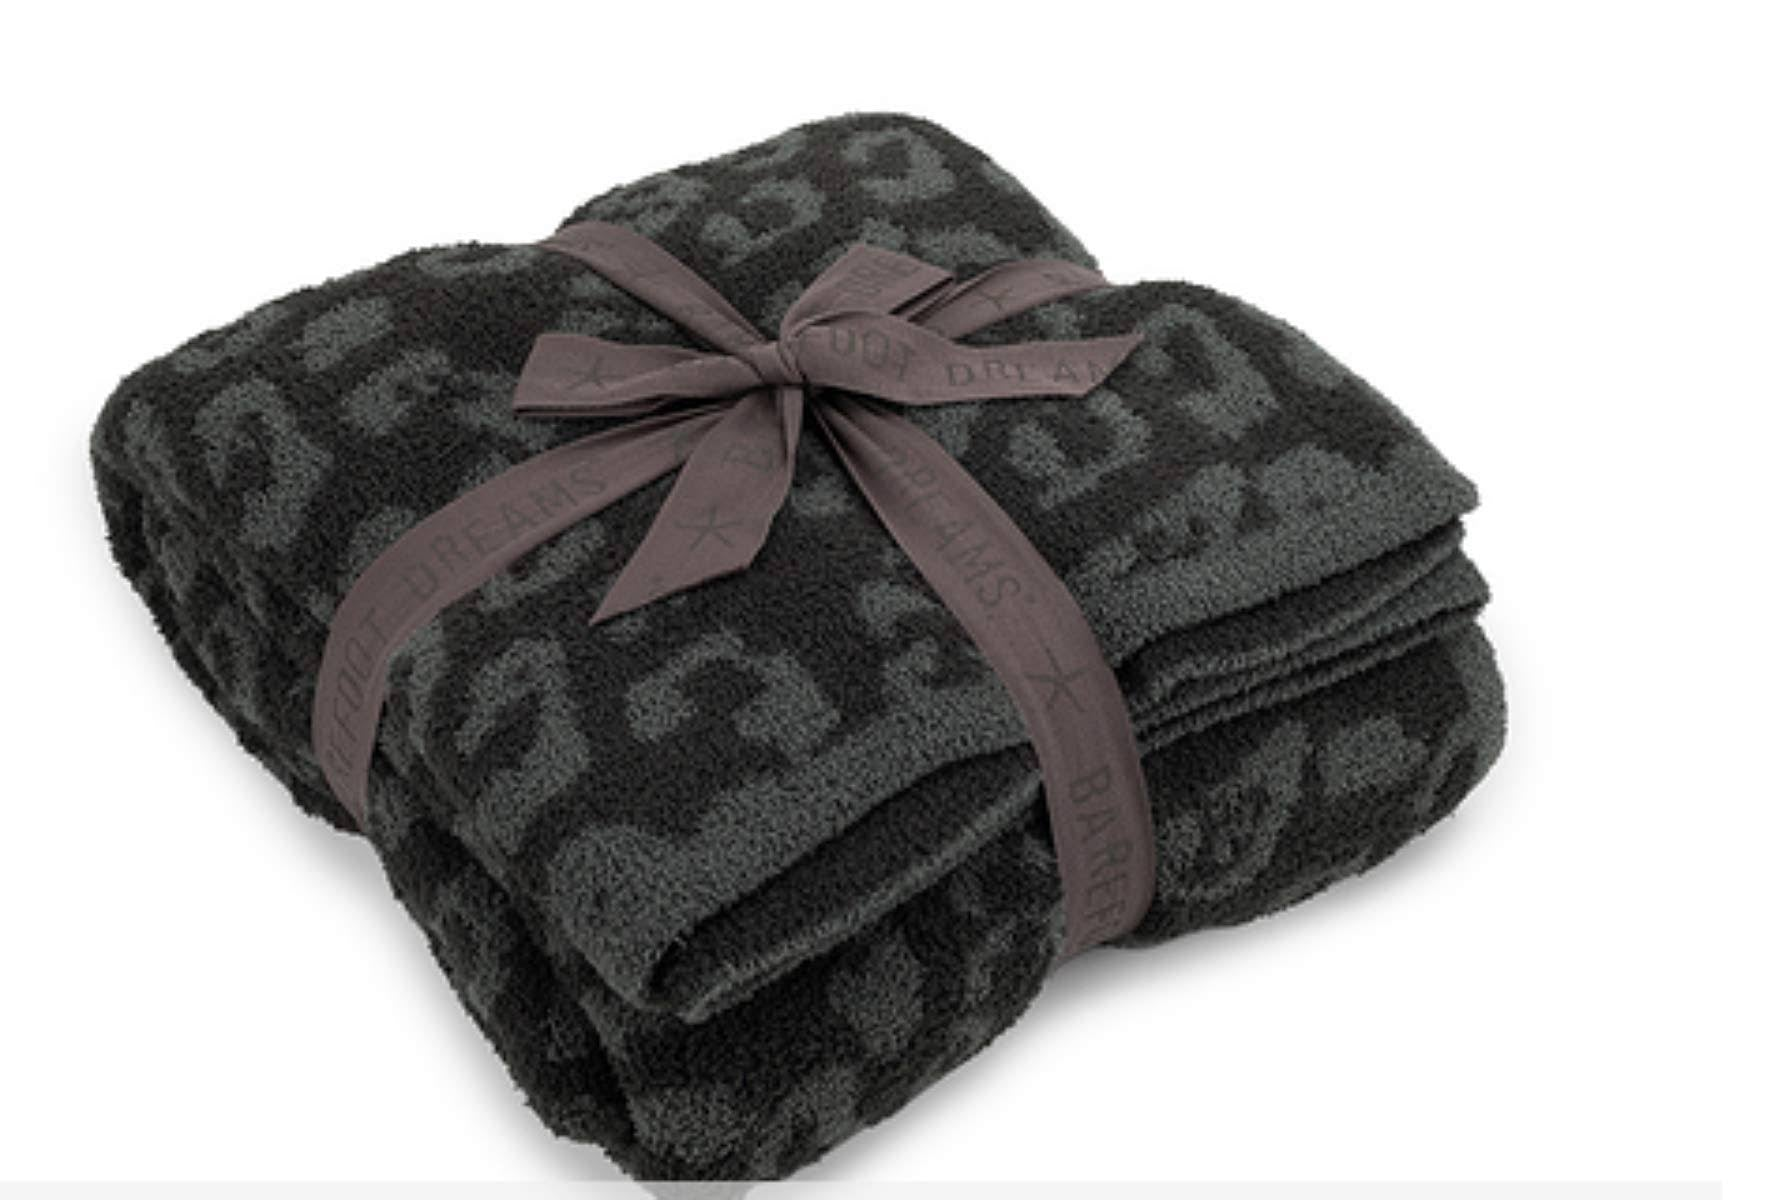 Barefoot Dreams -Cozy Chic In The Wild Throw - Graphite/Carbon Leopard